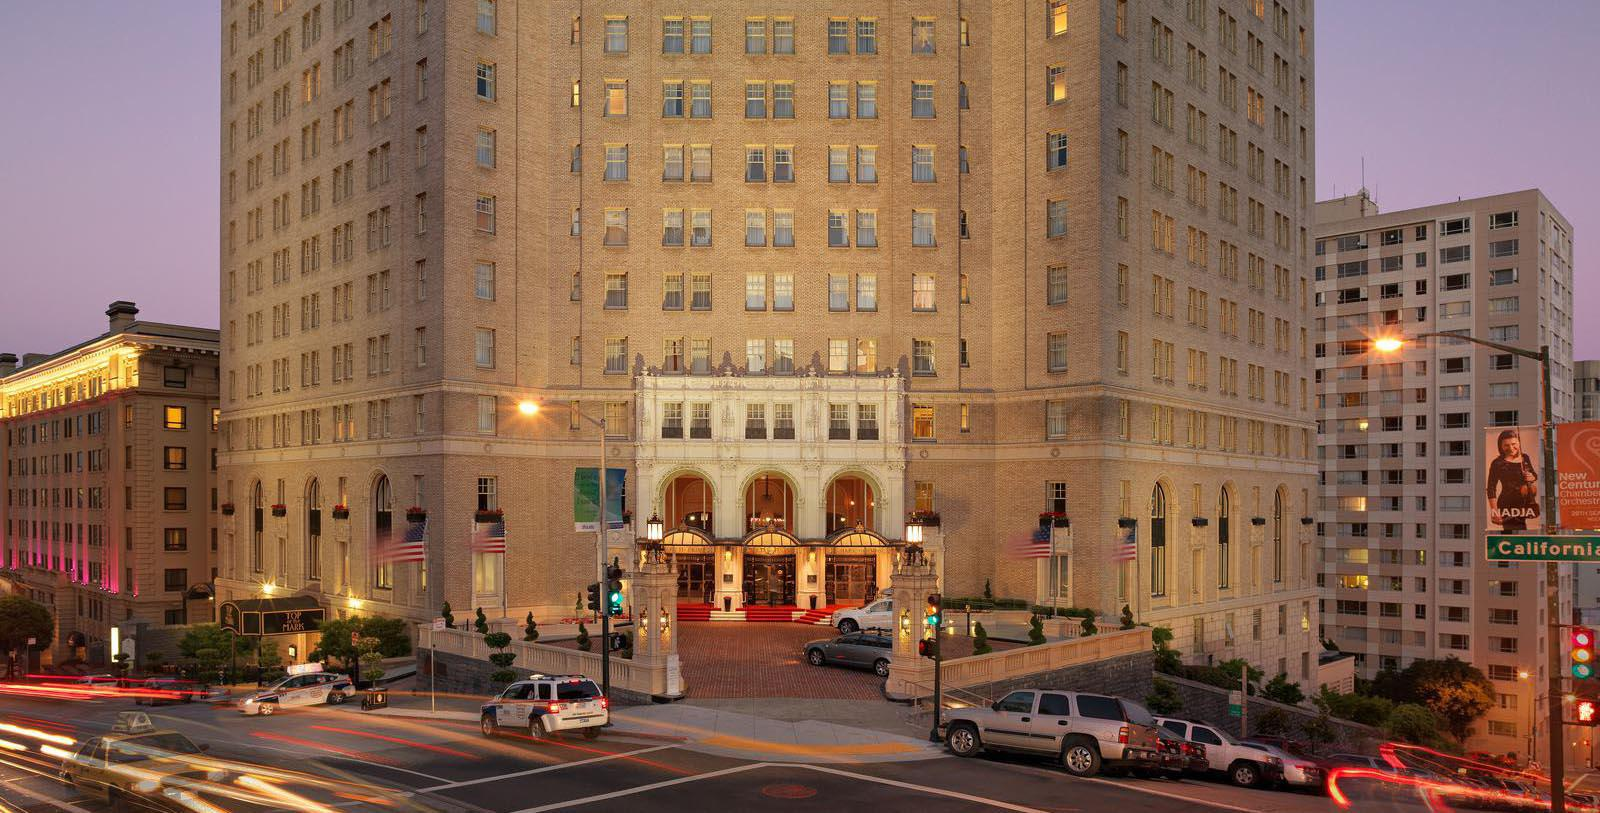 Image of Exterior at Night, InterContinental Mark Hopkins Hotel in San Francisco, California, 1926, Member of Historic Hotels of America, Special Offers, Discounted Rates, Families, Romantic Escape, Honeymoons, Anniversaries, Reunions